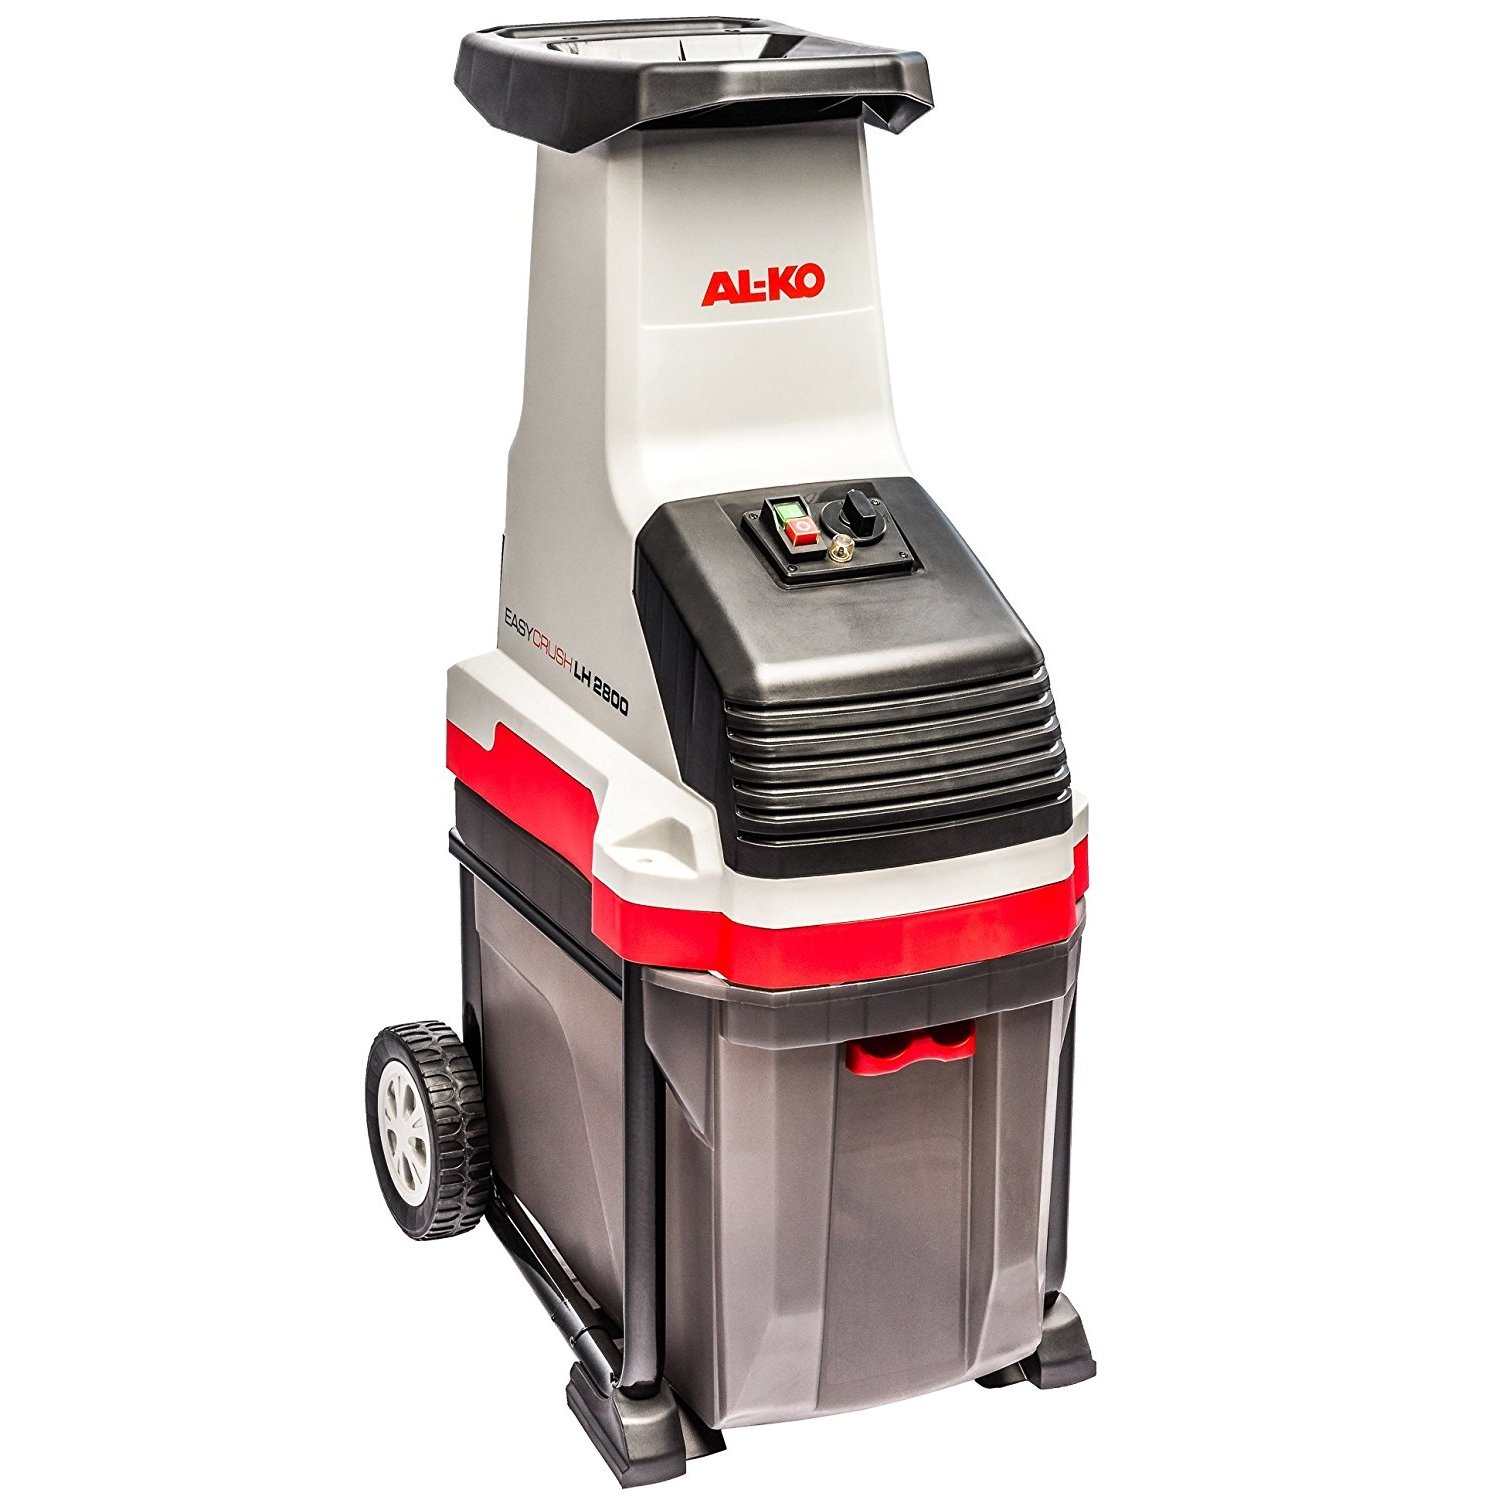 AL-KO Easy Crush LH 2800 2.8 кВт